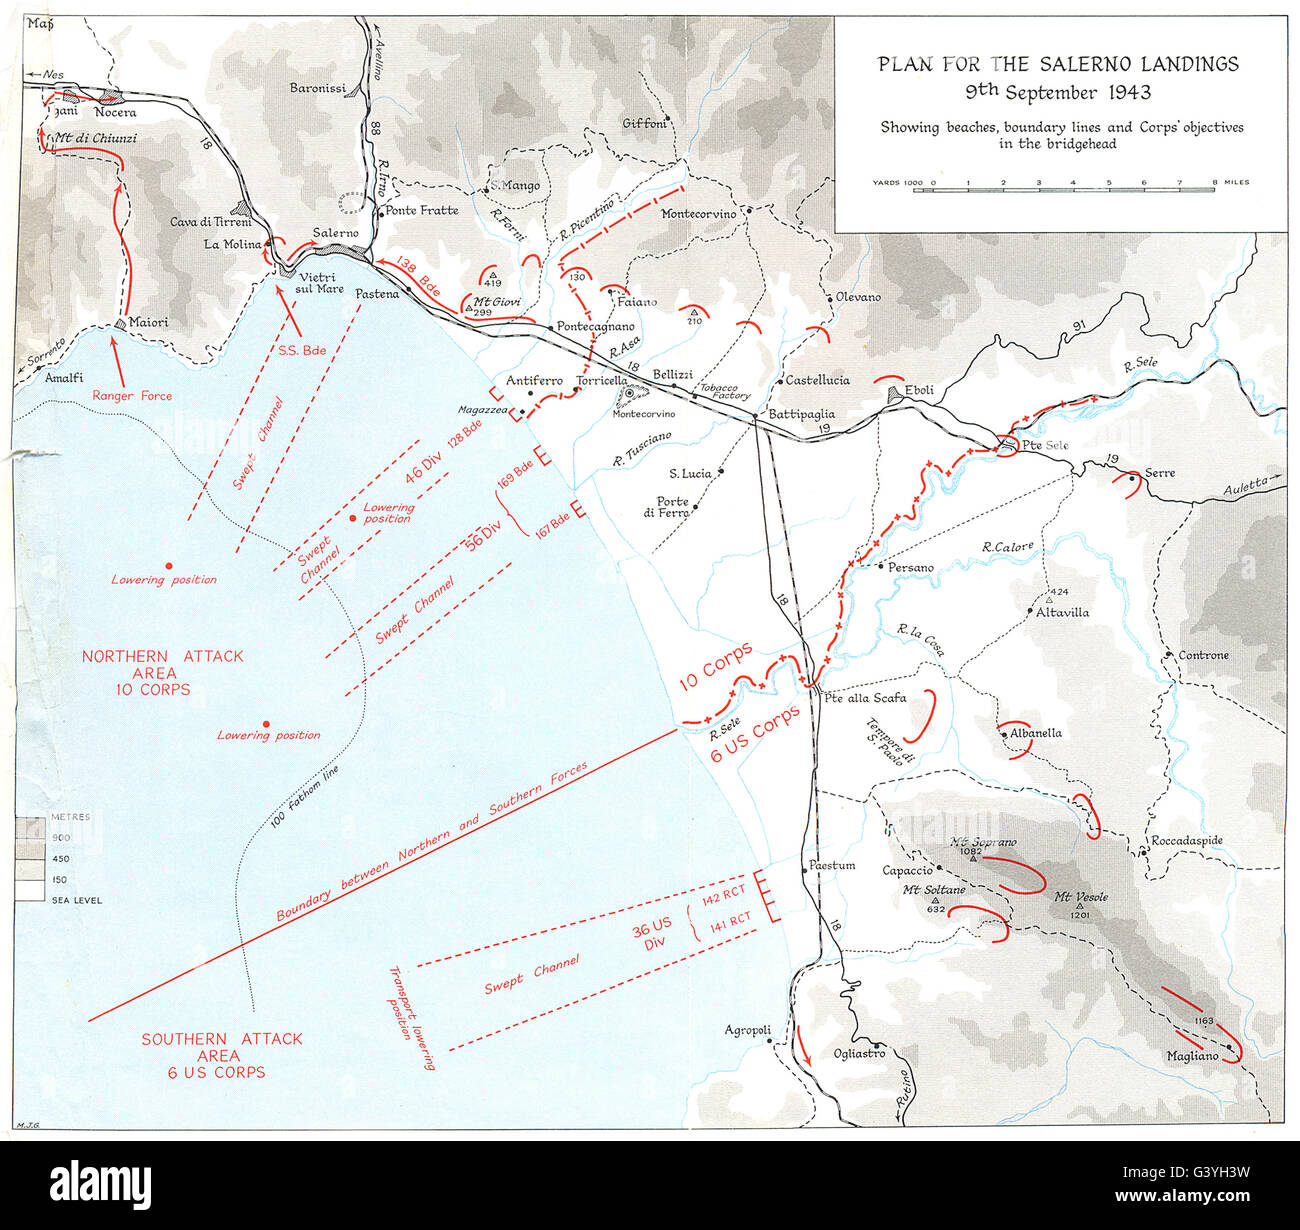 Italy Invasion Of Calabria Sep 1943 Plan For Salerno Landings 9th